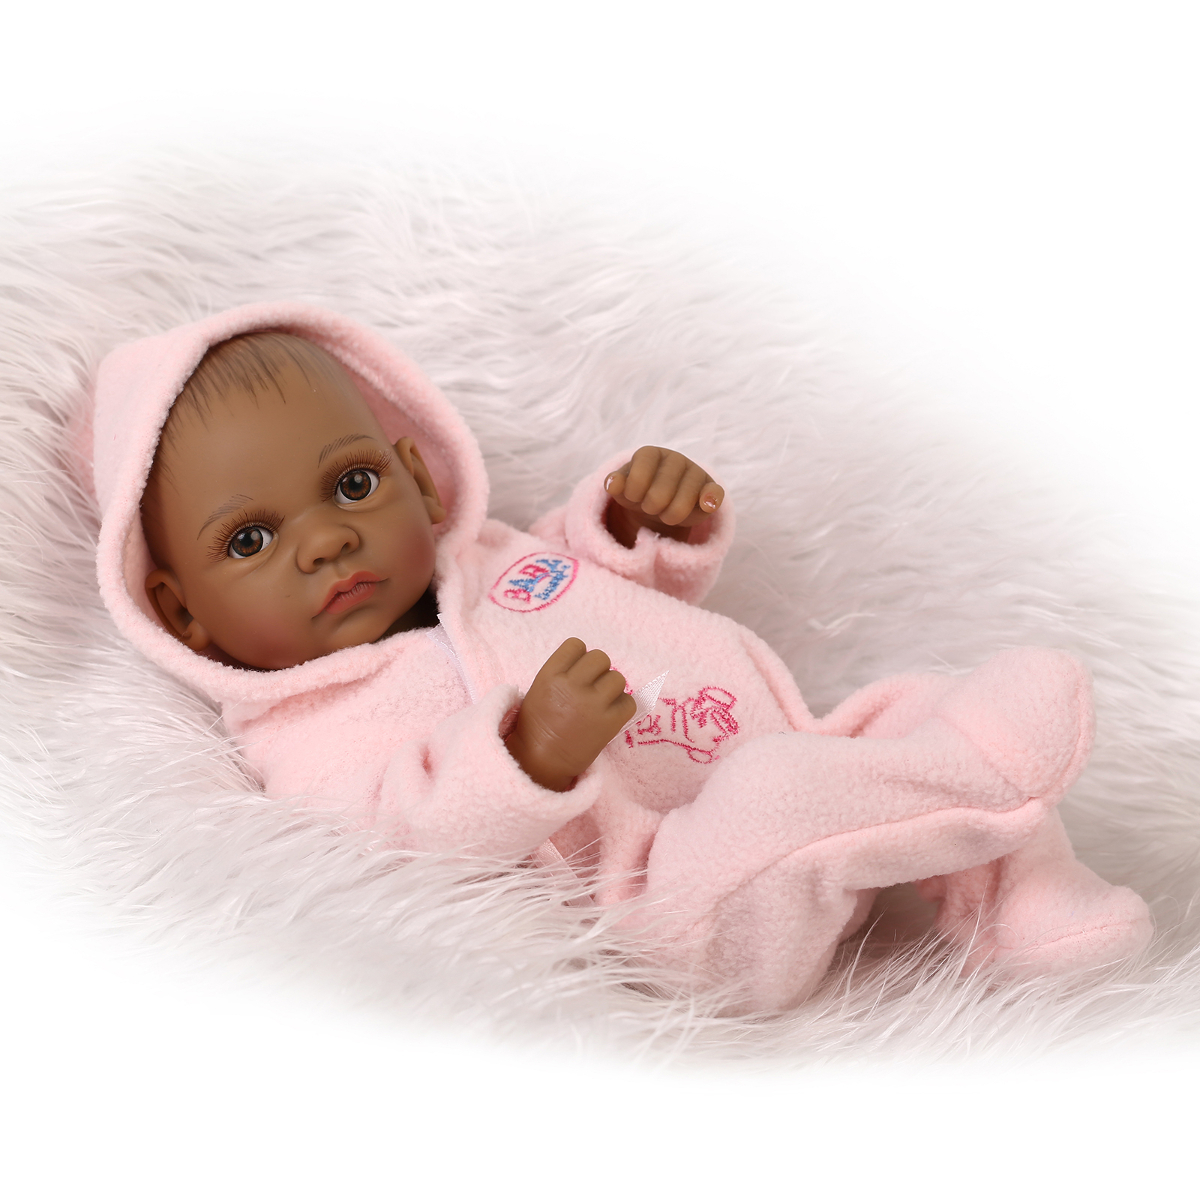 11inch African Reborn Baby Doll Silicone Lifelike Baby